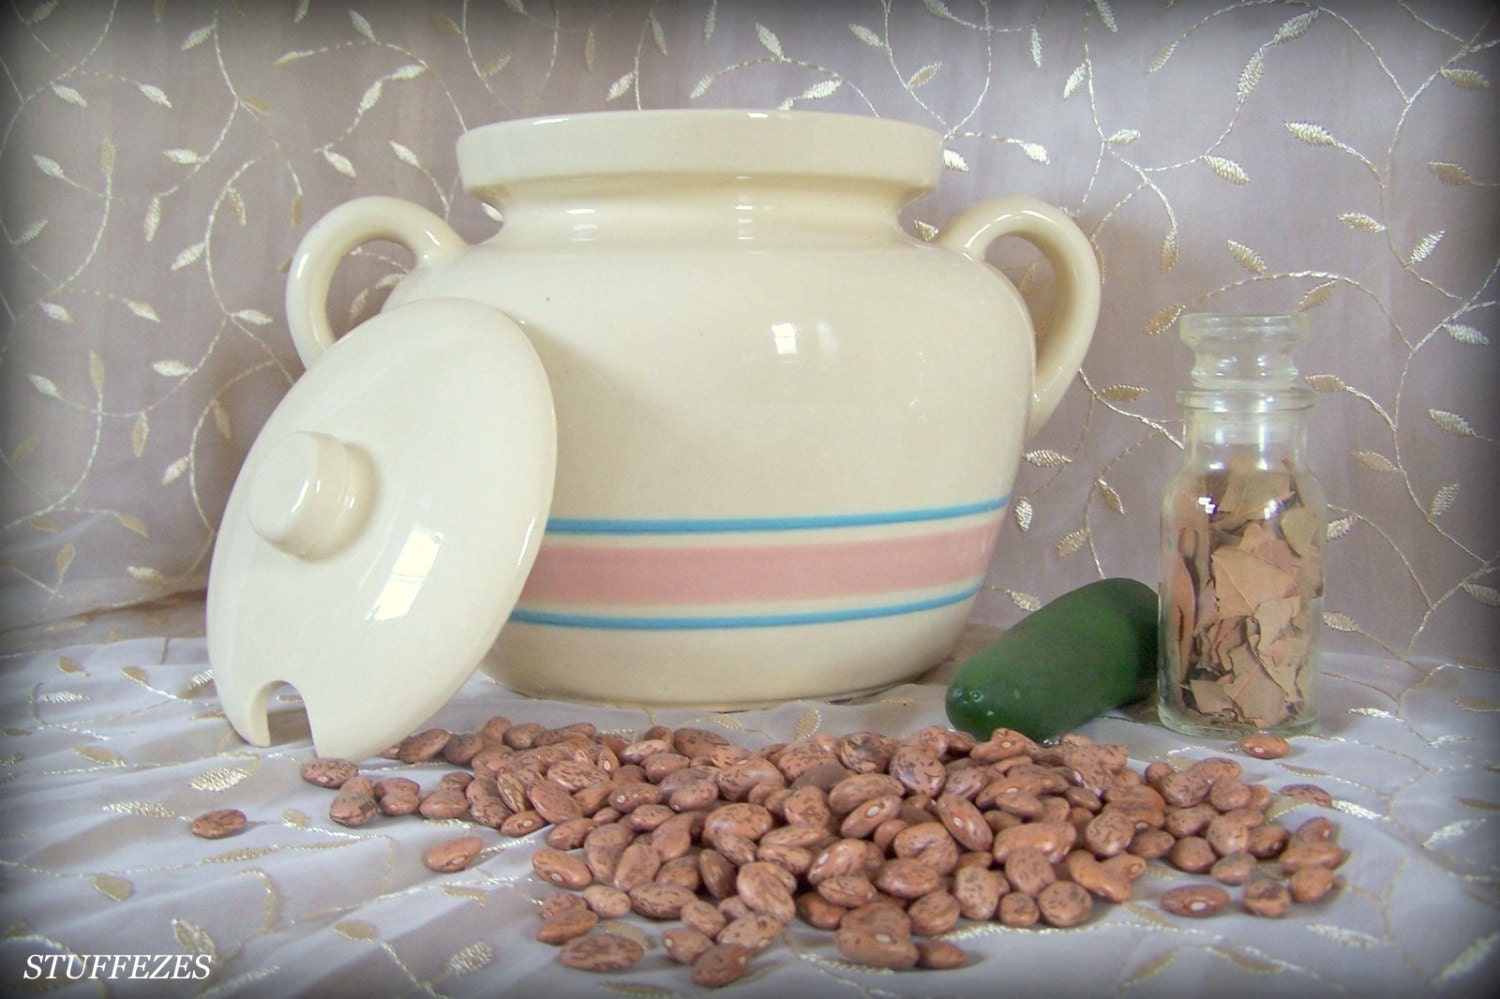 Mccoy 342 Bean Pot Vintage Pottery Bean Pot Lidded Bean Pot